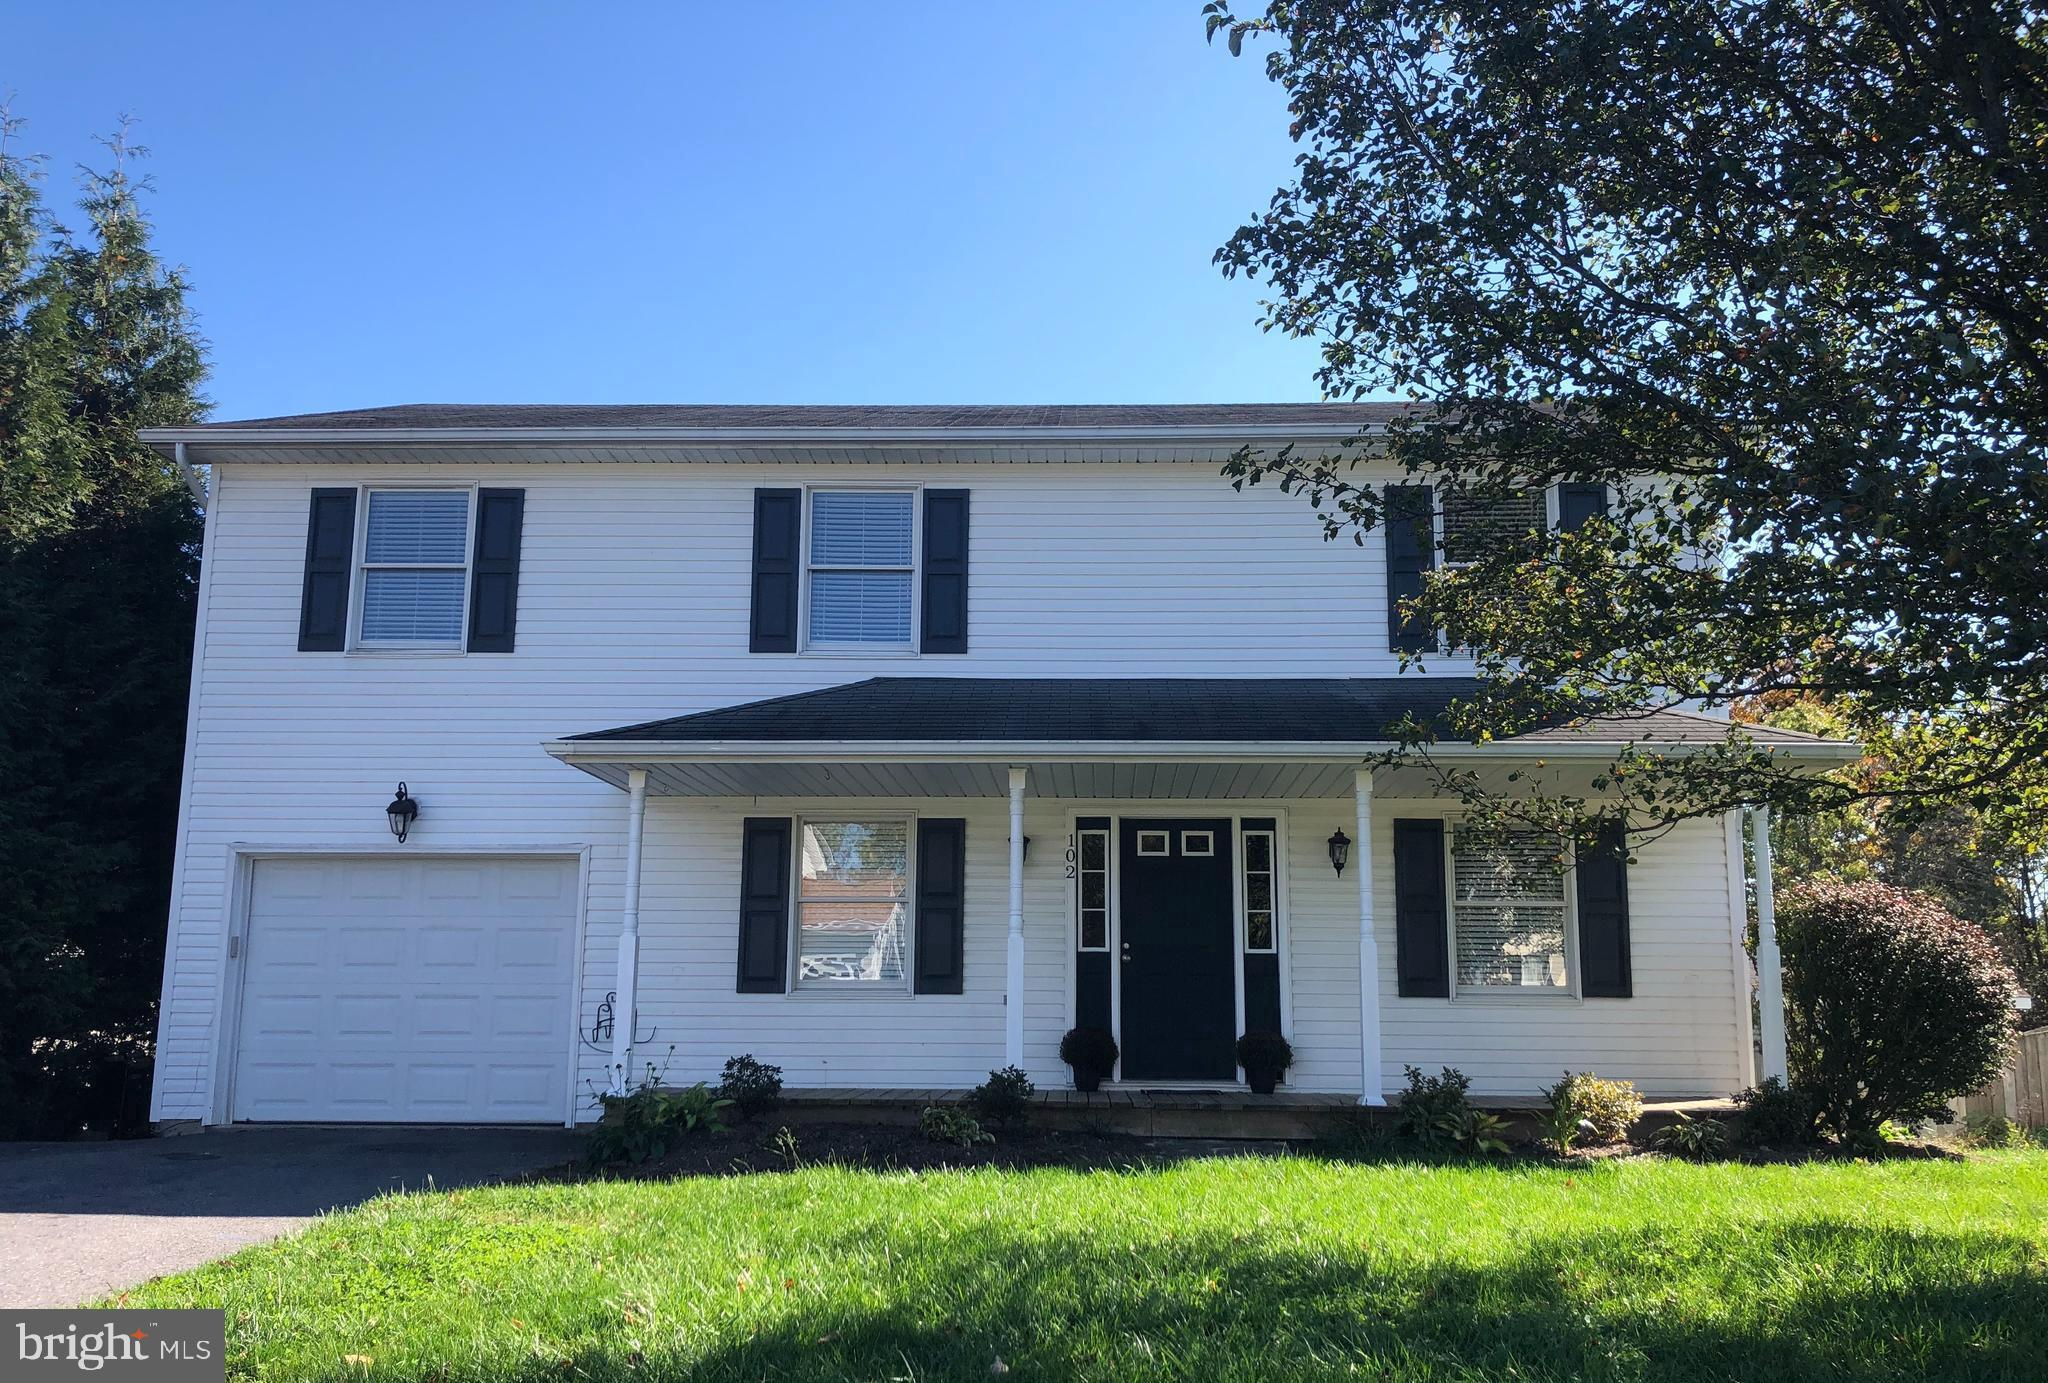 Location...location..location!! This traditional 2 story Colonial on a cul-de-sac is a must see! Loc